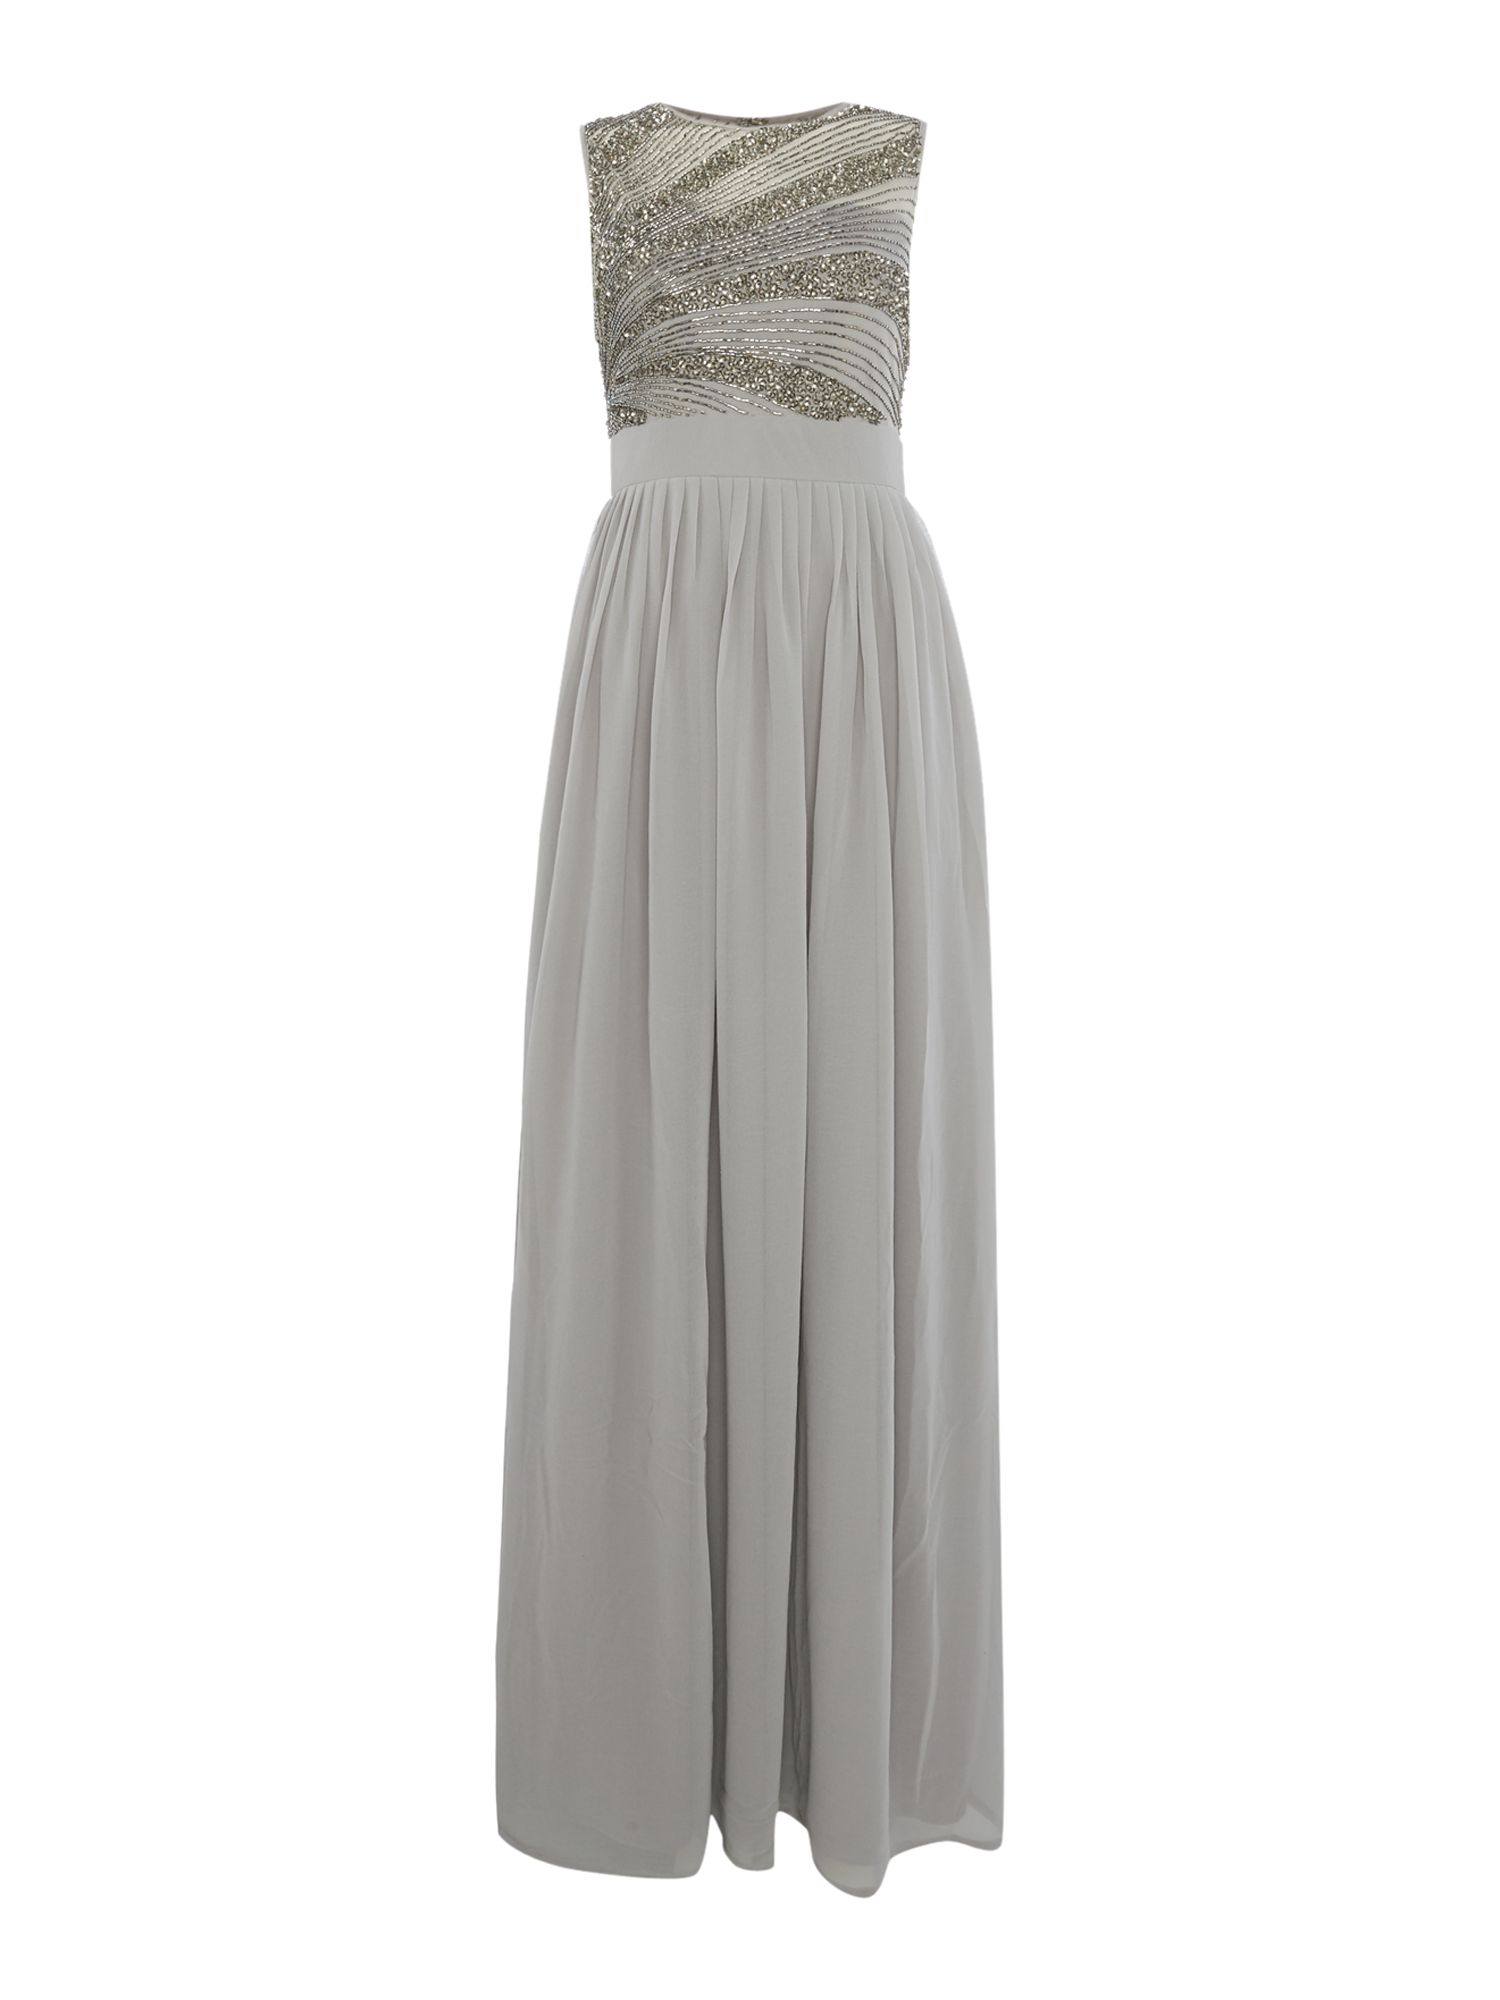 Lace and Beads Lace and Beads Sleeveless Maxi Dress, Grey